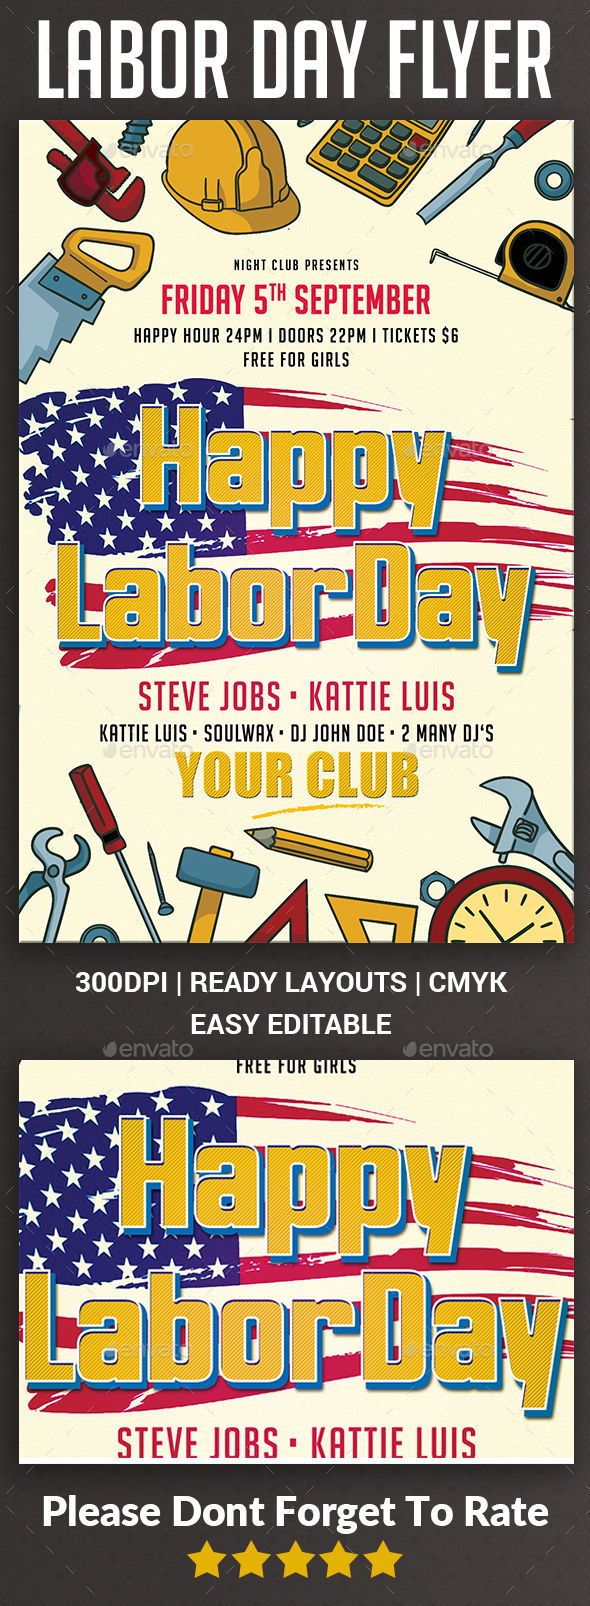 Labor Day Flyer by Afjamaal (Labor Day party flyer)